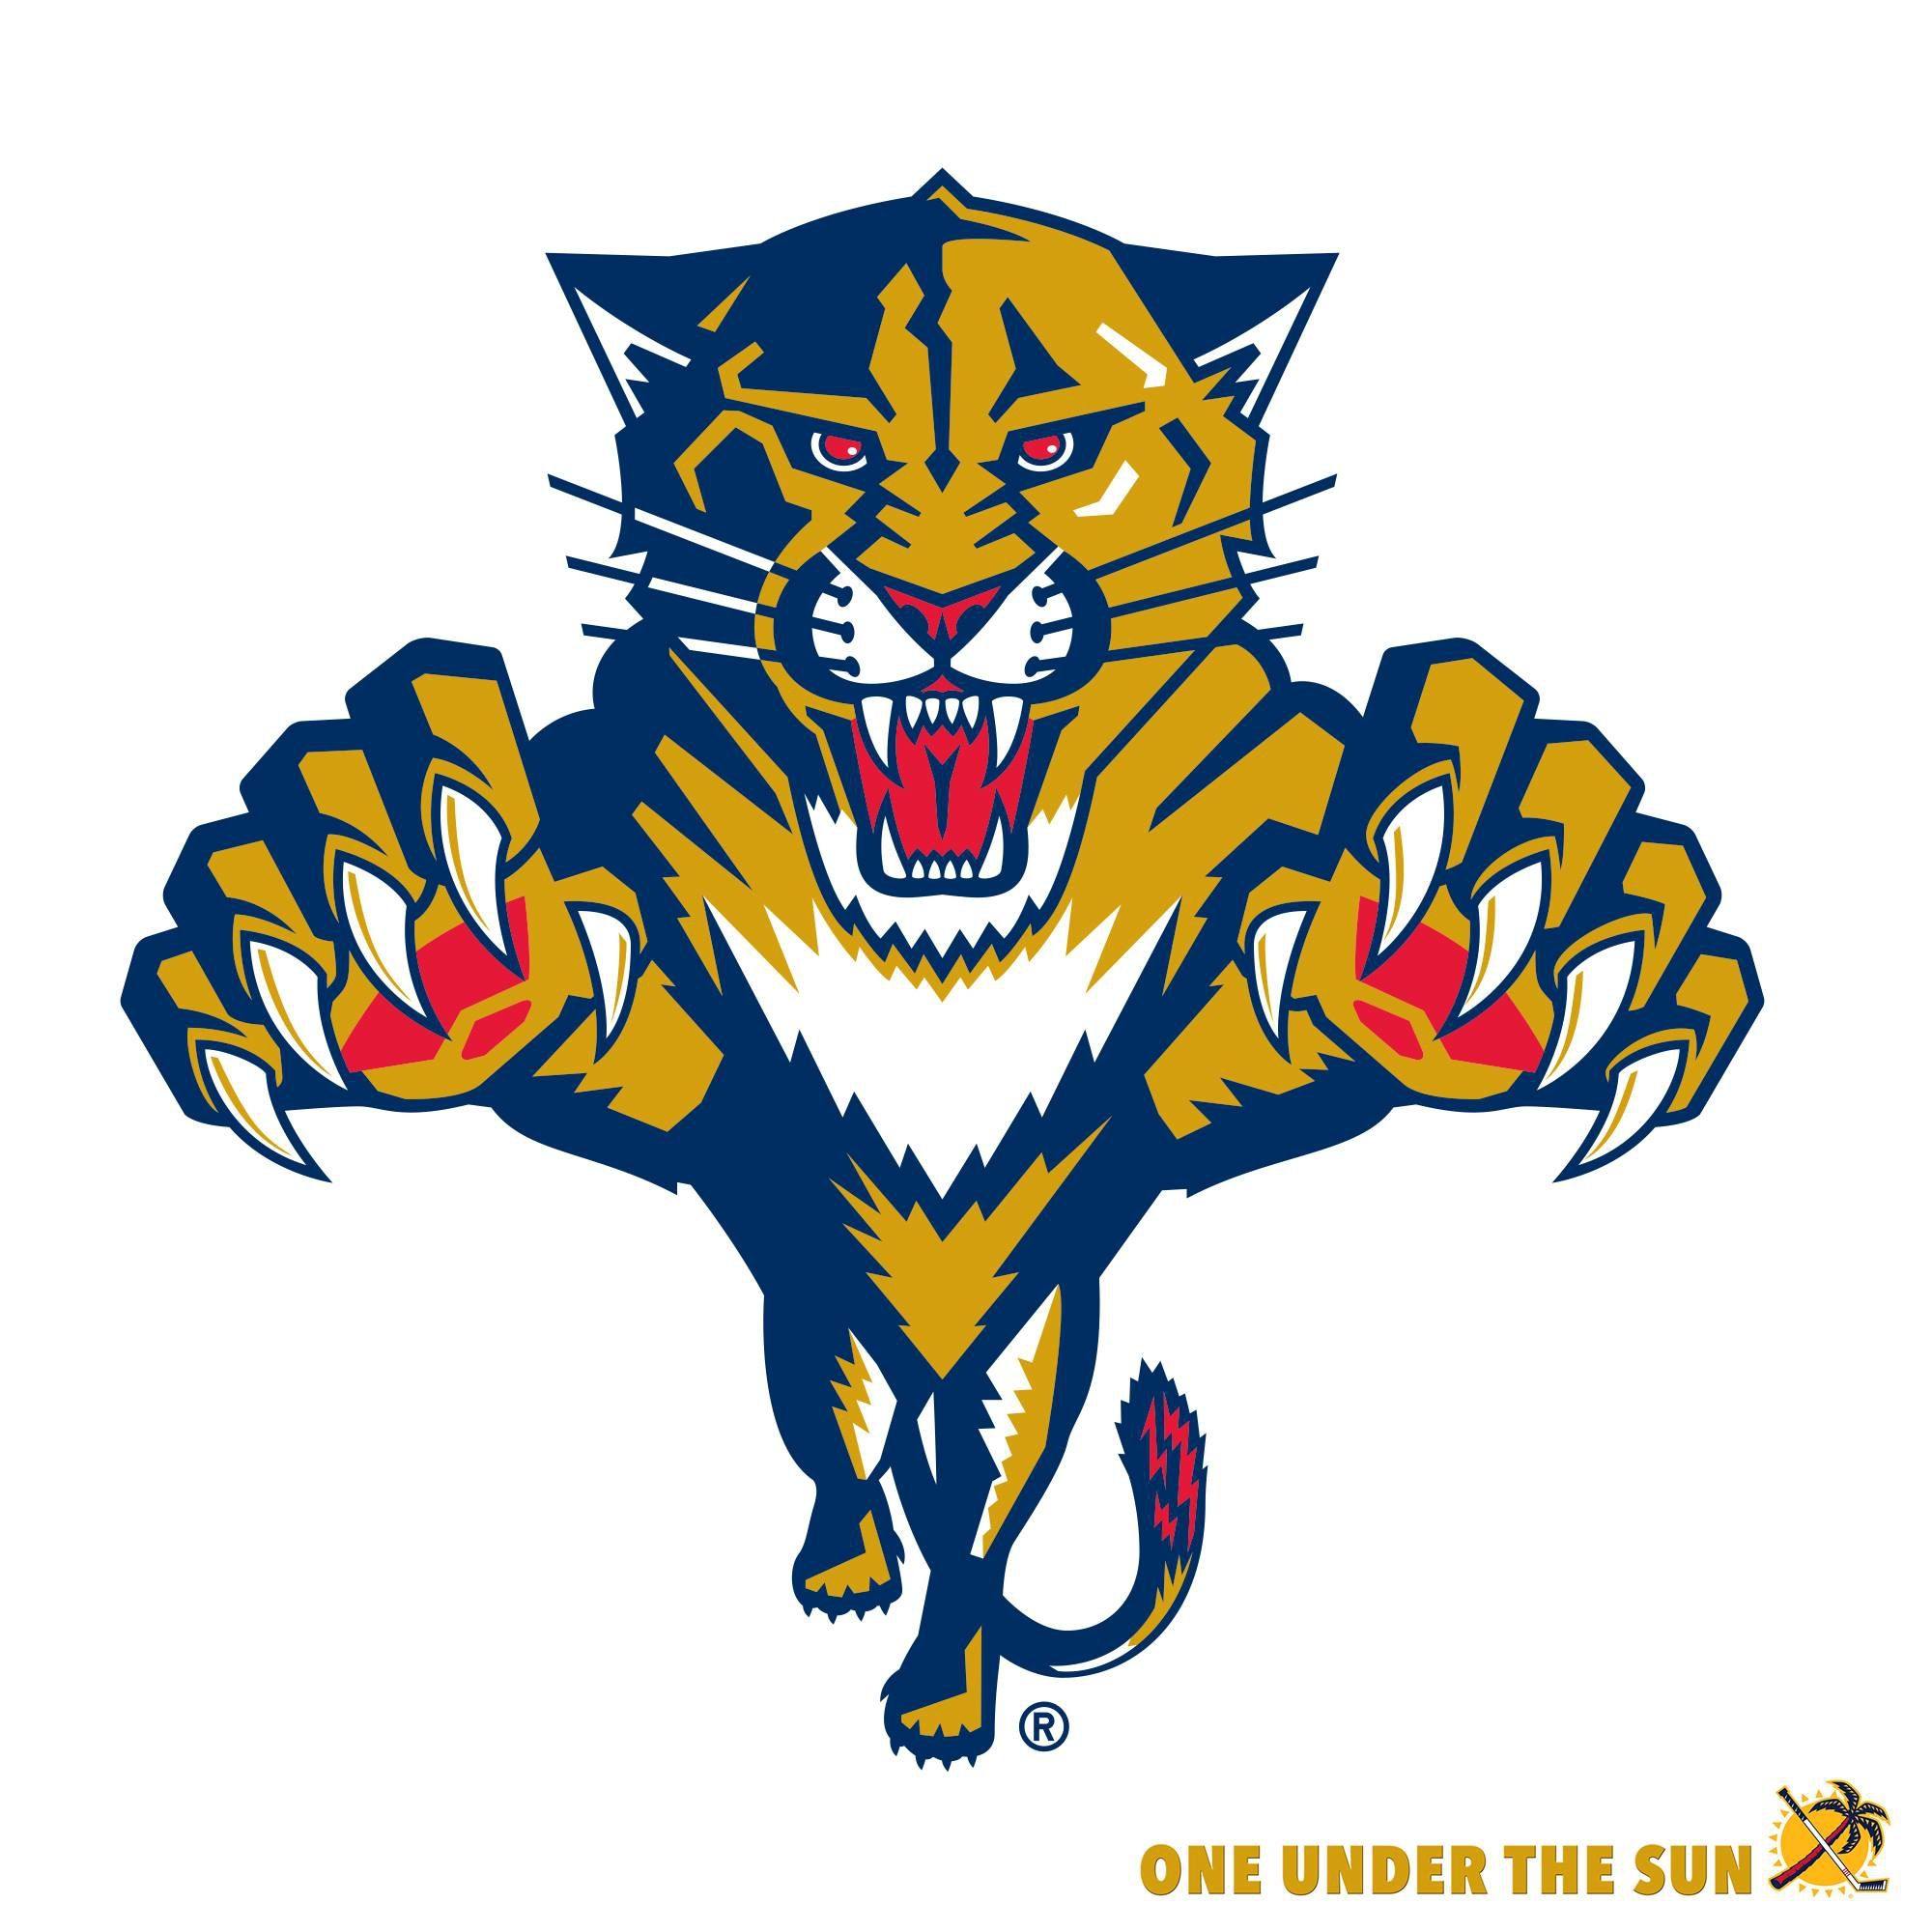 2000x2000 Florida Panthers Nhl Hockey Sporting Life Florida Panthers